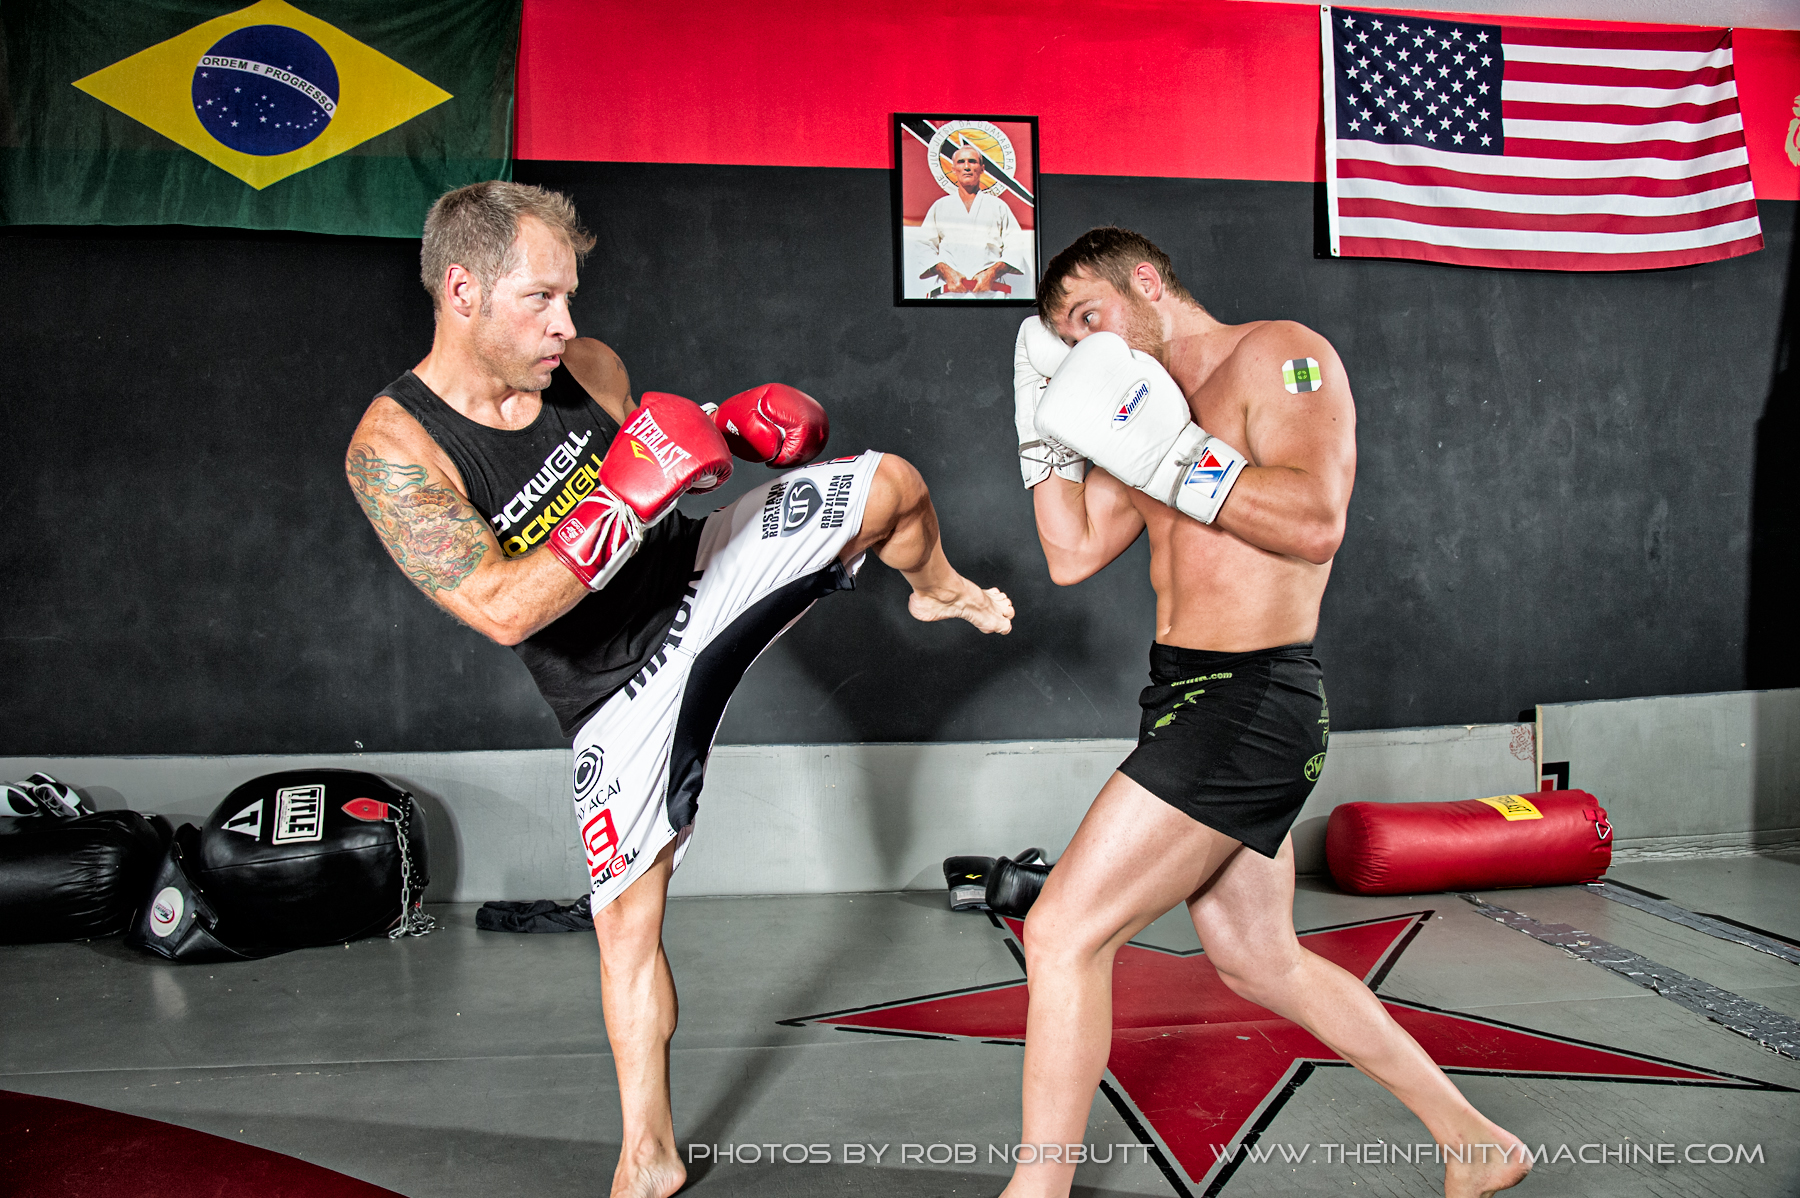 Layton's One Hit MMA gym is packed full of contenders